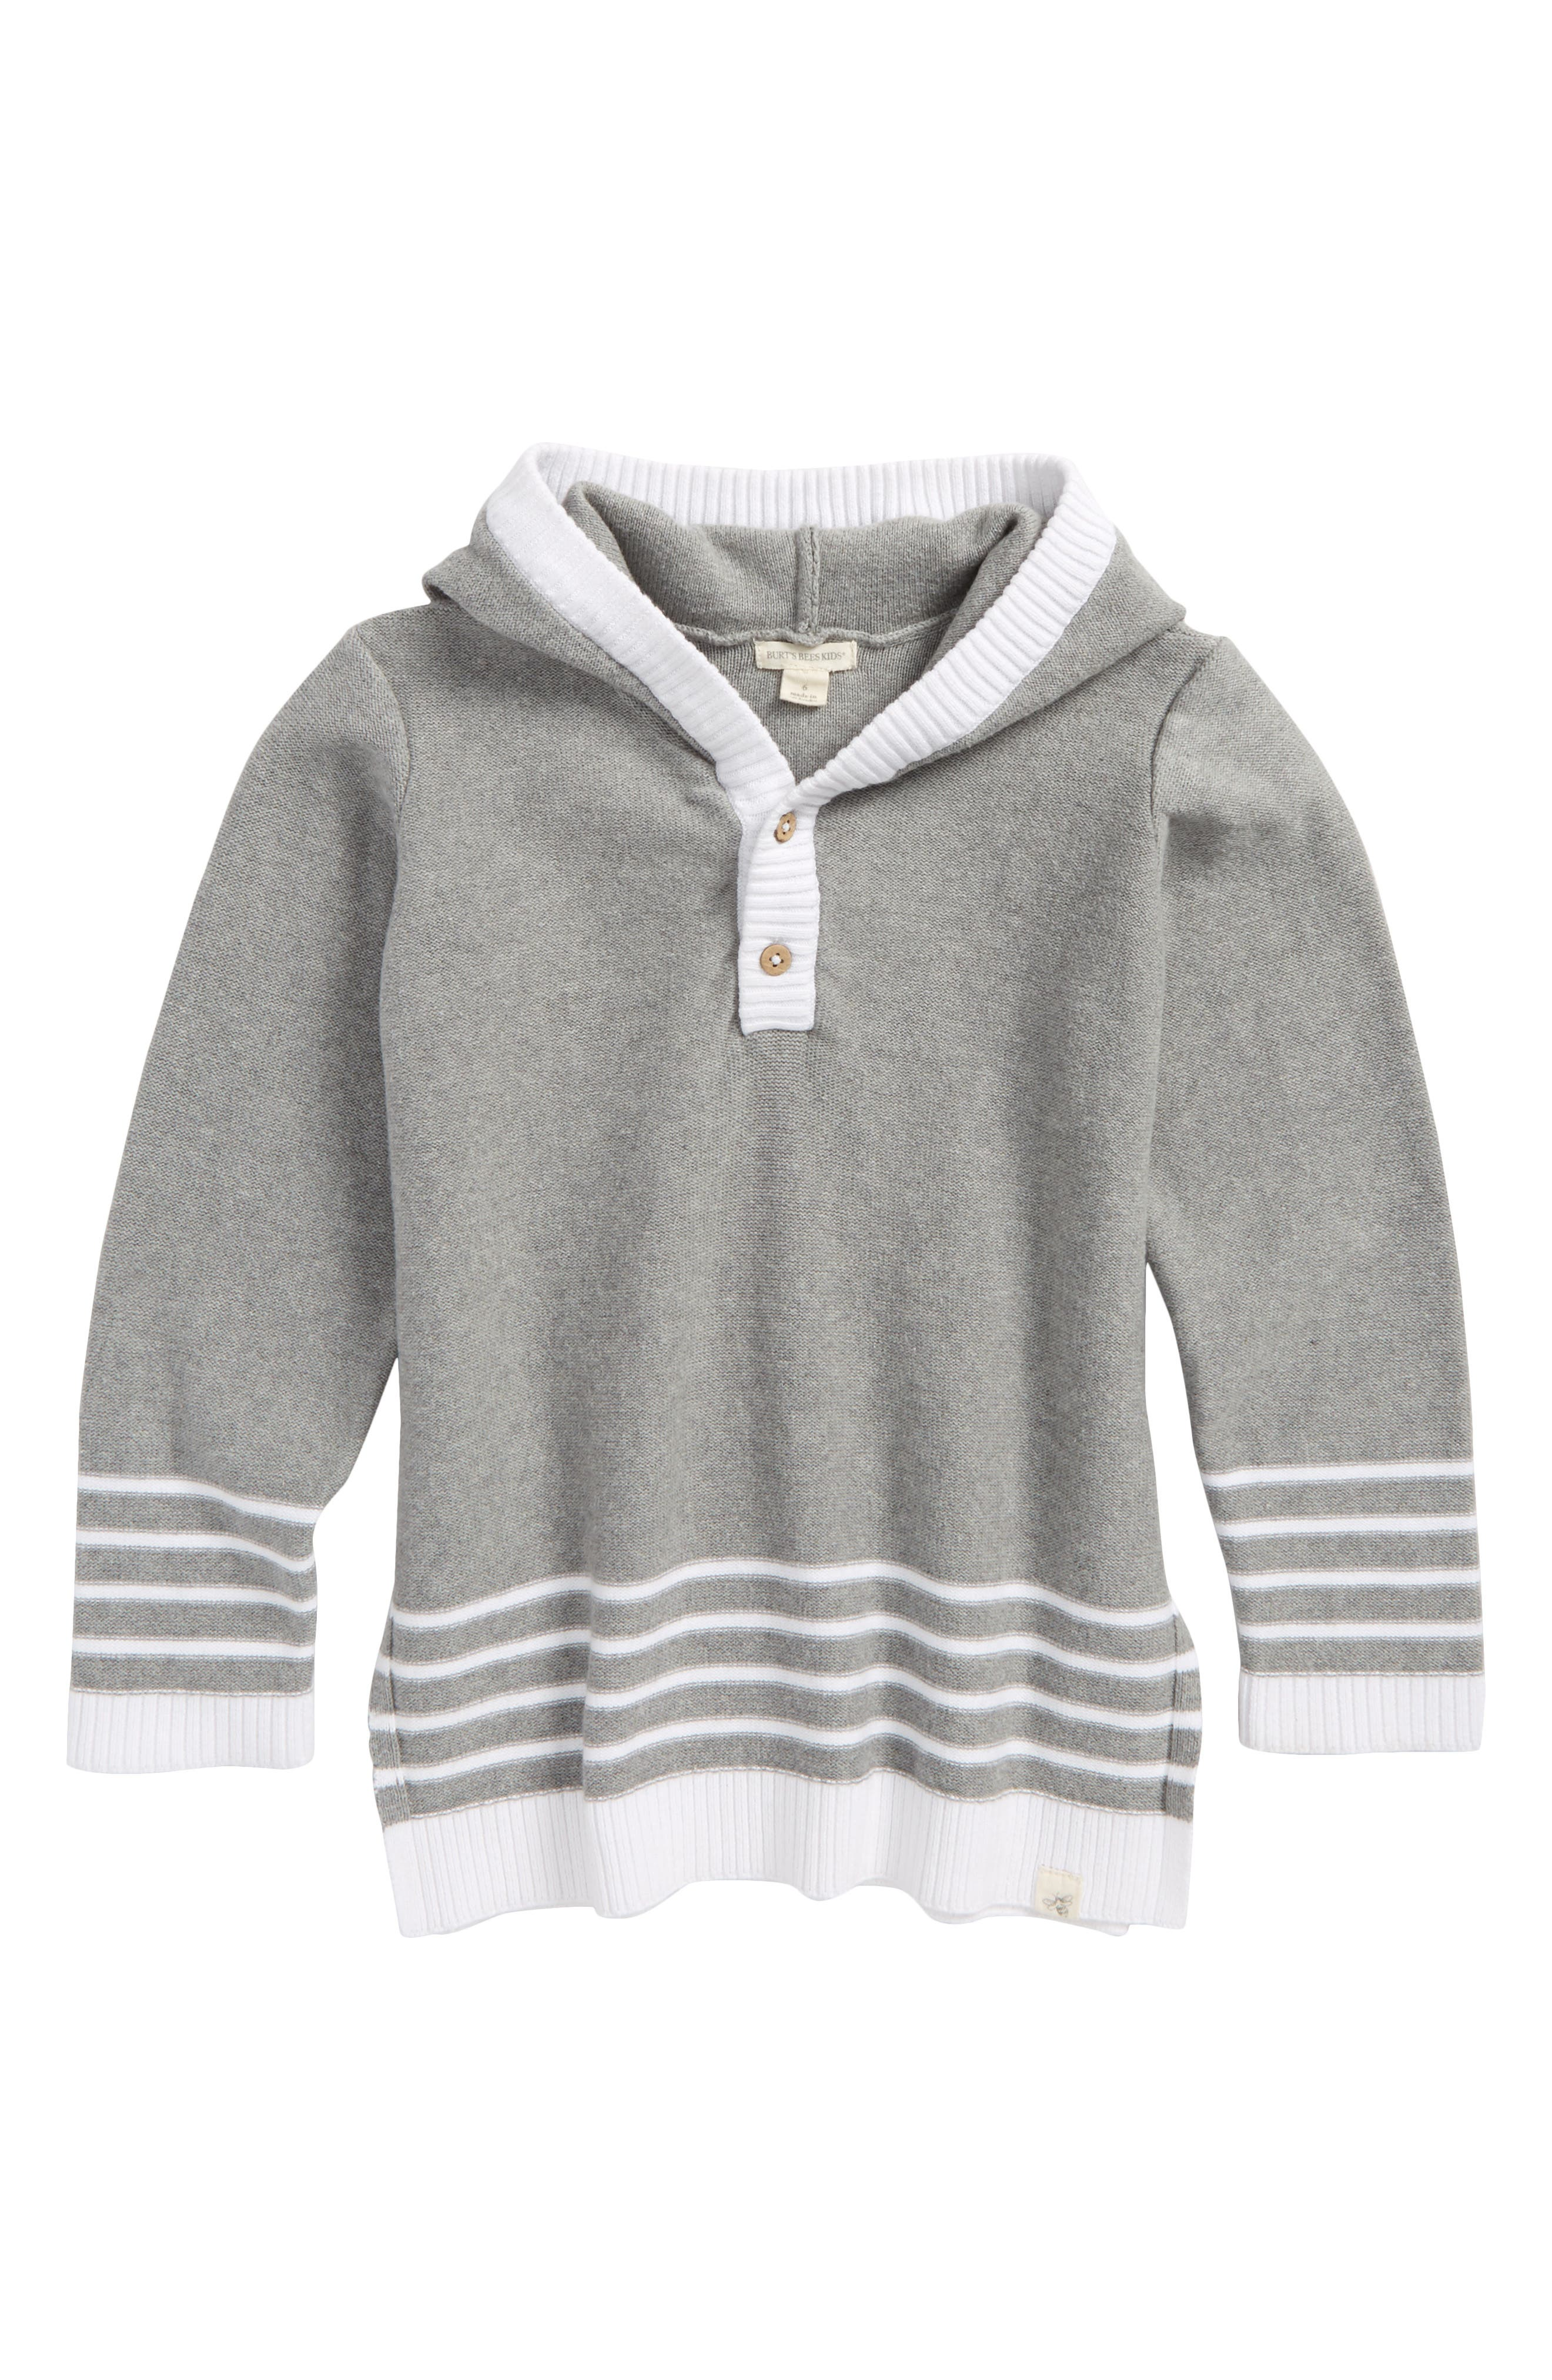 Burt's Bees Baby Organic Cotton Knit Hoodie (Toddler Boys & Little Boys)